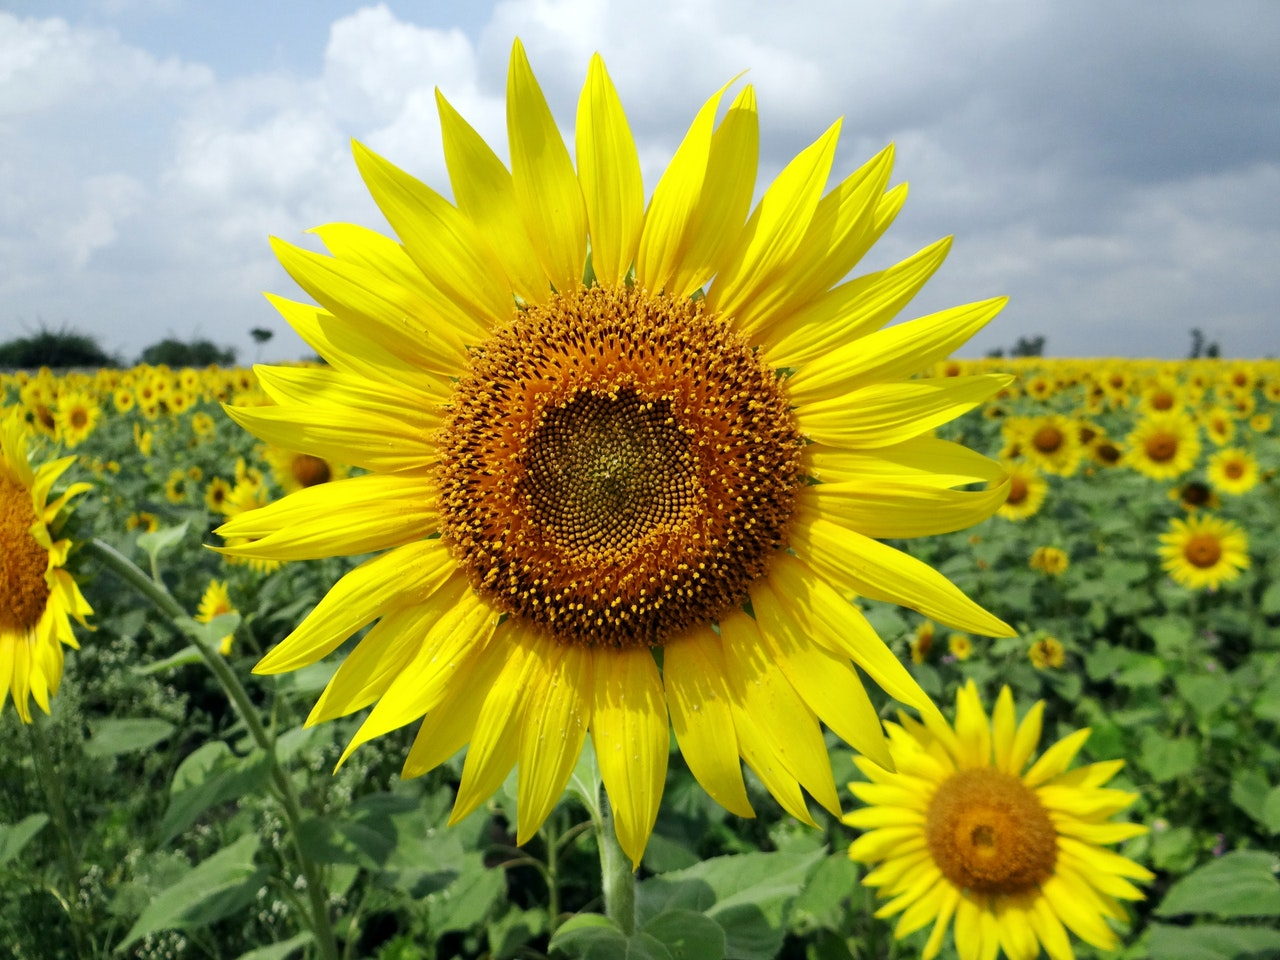 flower-sunflower-karnataka-india-64221.jpeg